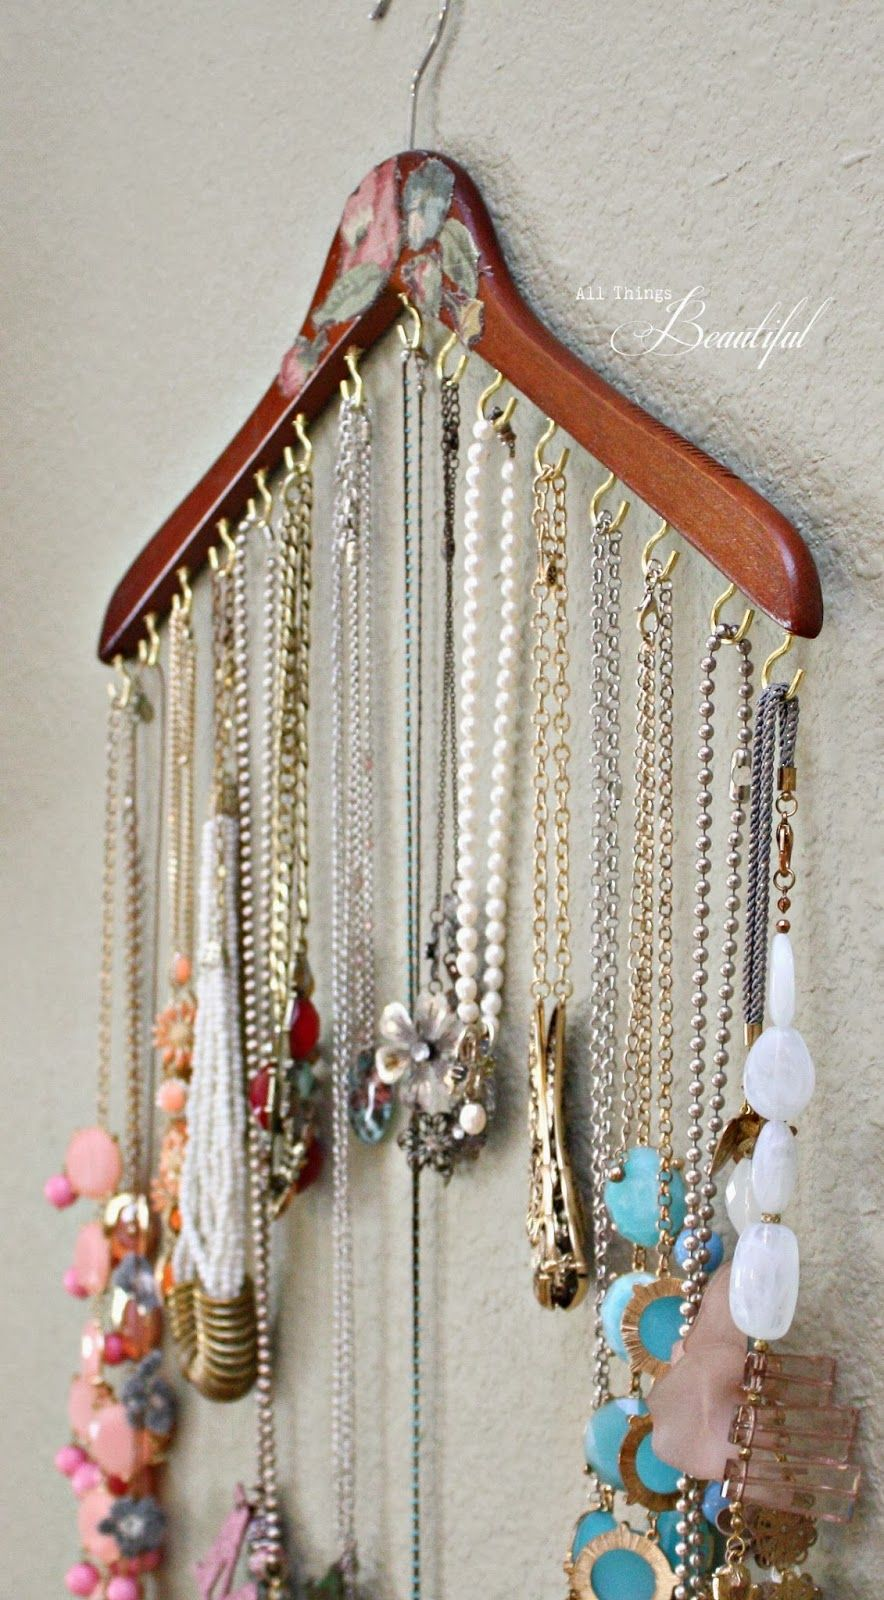 Operation Organization 2014 Jewelry Organization from